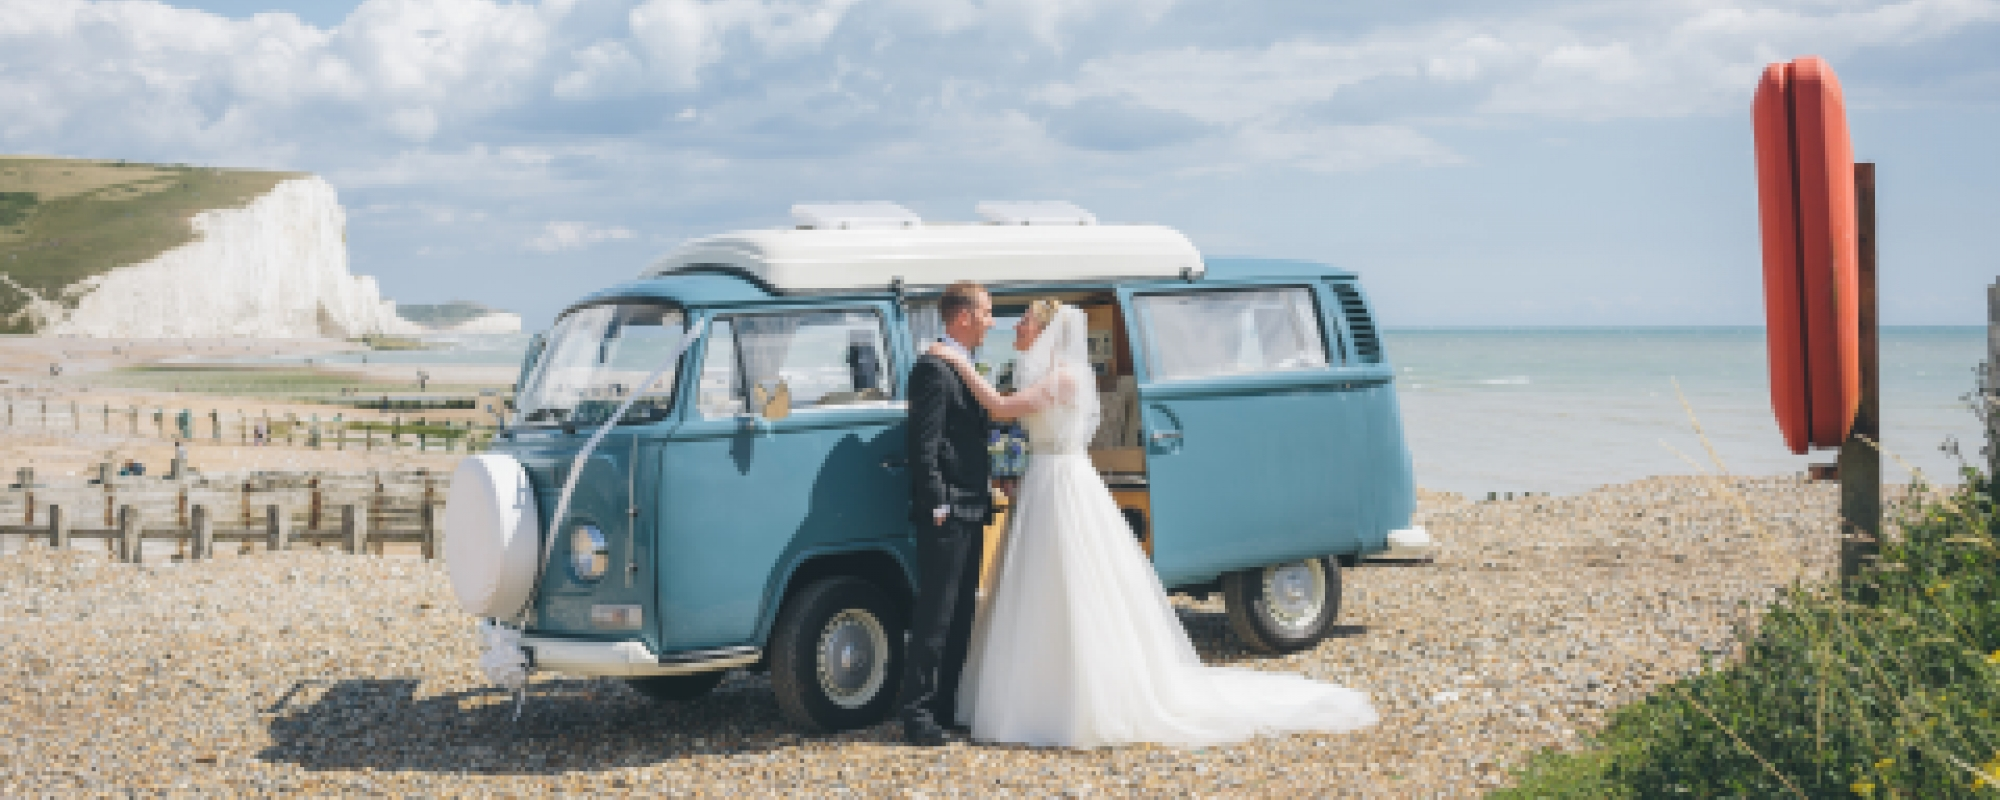 VW Campervan Wedding Hire Surrey